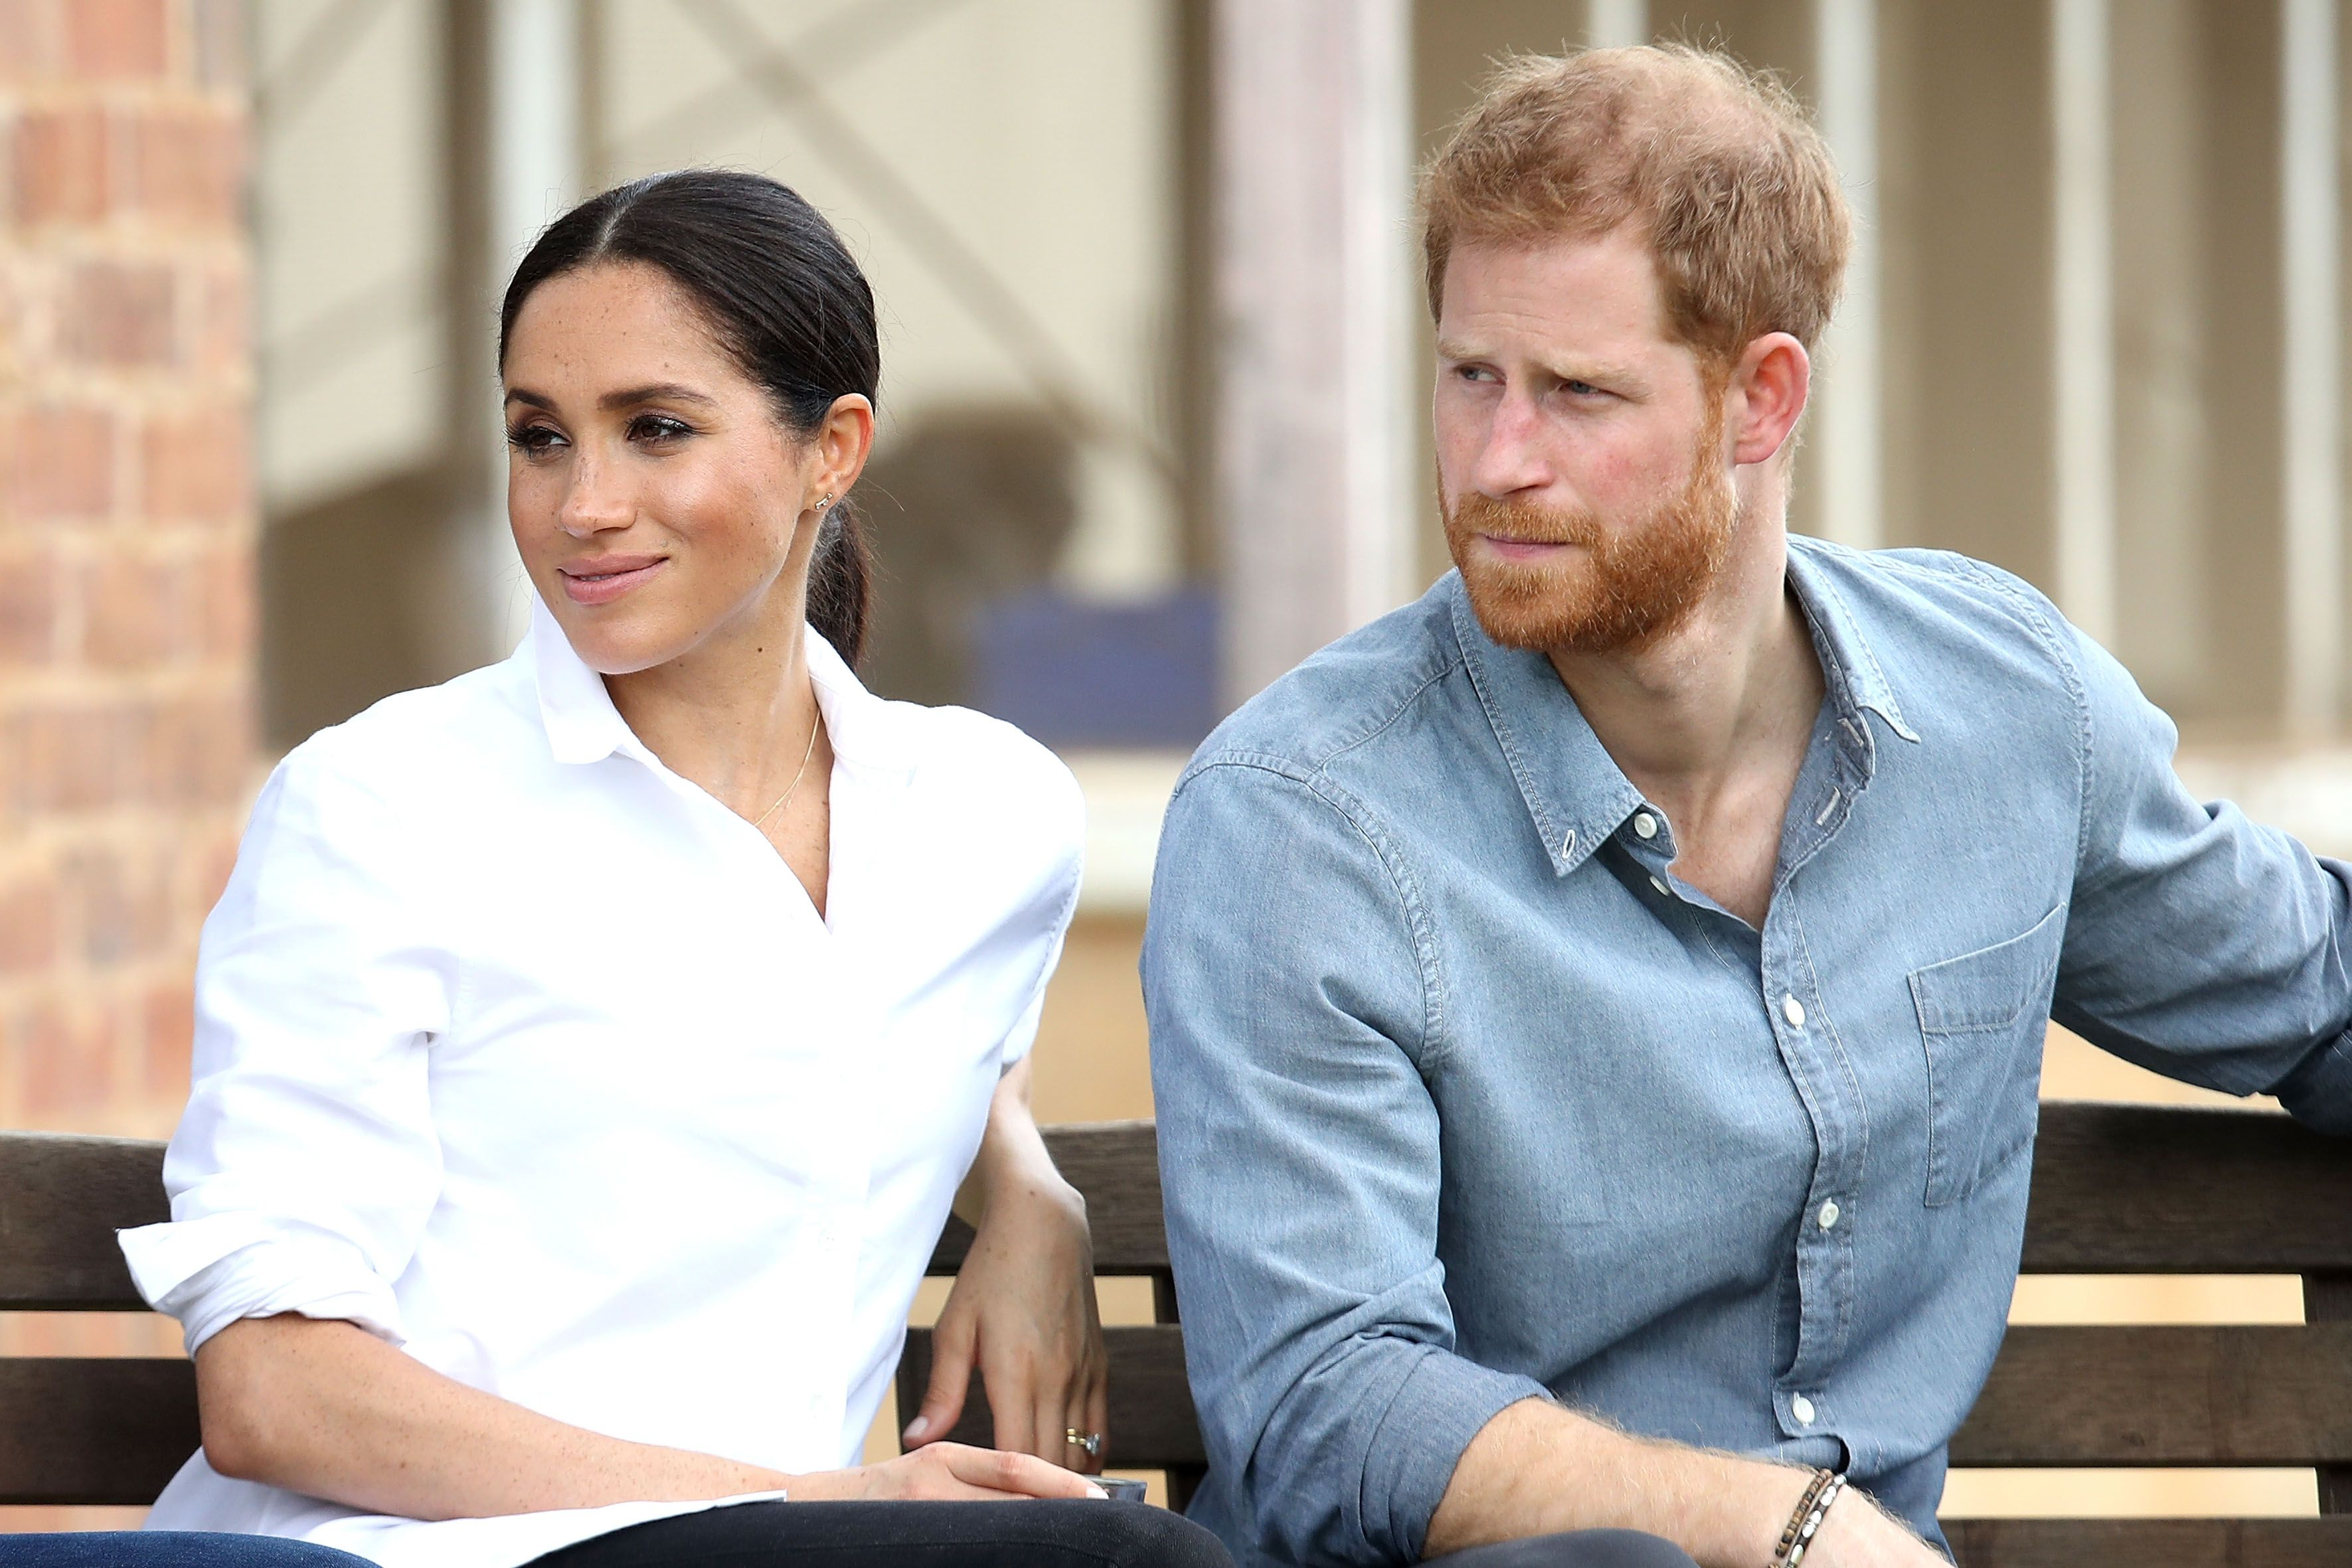 Meghan Markle and Prince Harry will have a very busy last month of being royals